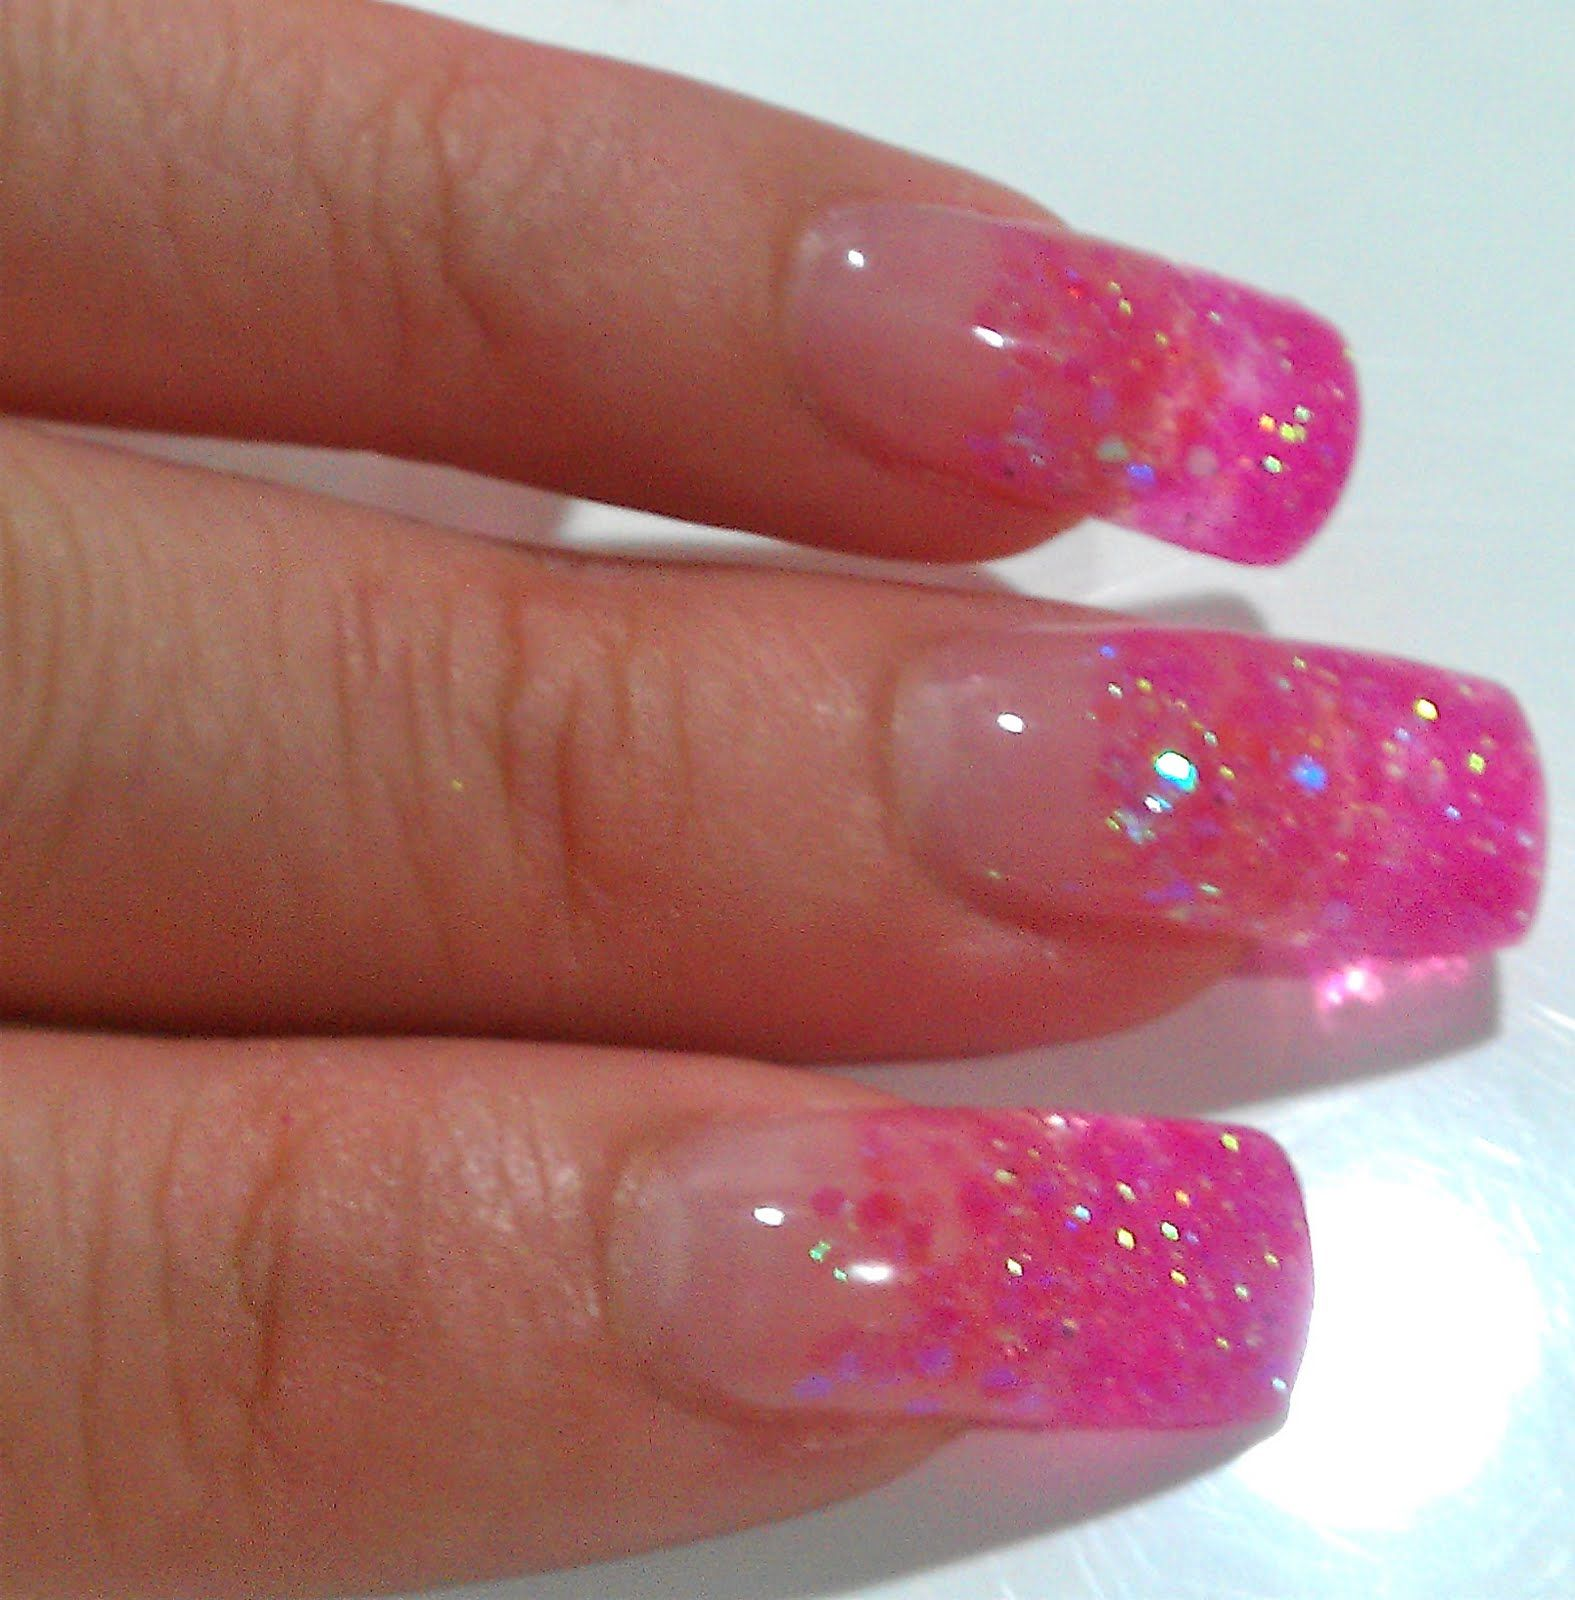 uv gel nails | notd: pink glitter gel nails | nails | pinterest